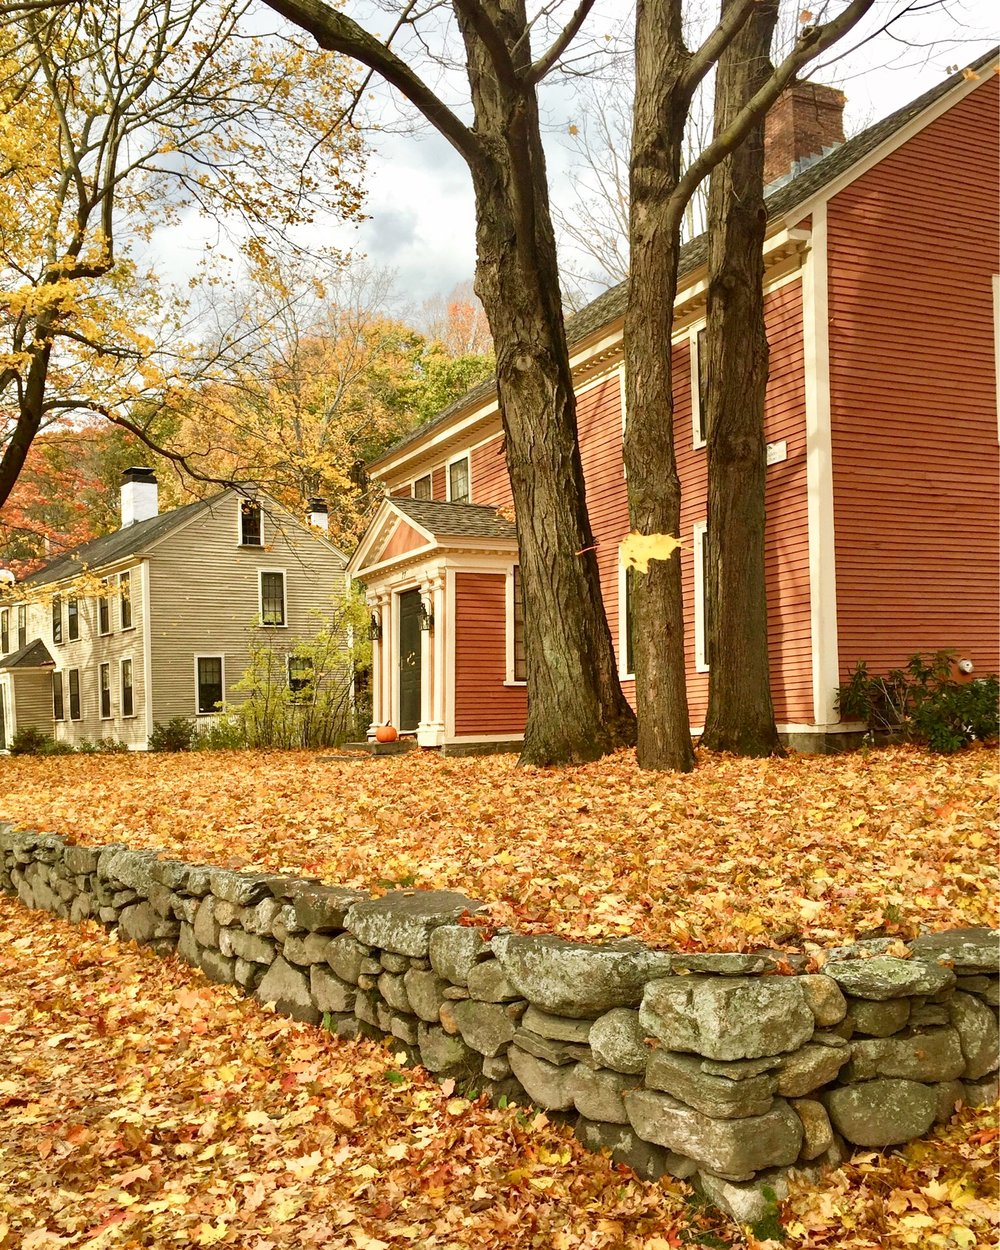 A walk through Concord Massachusetts in the fall.